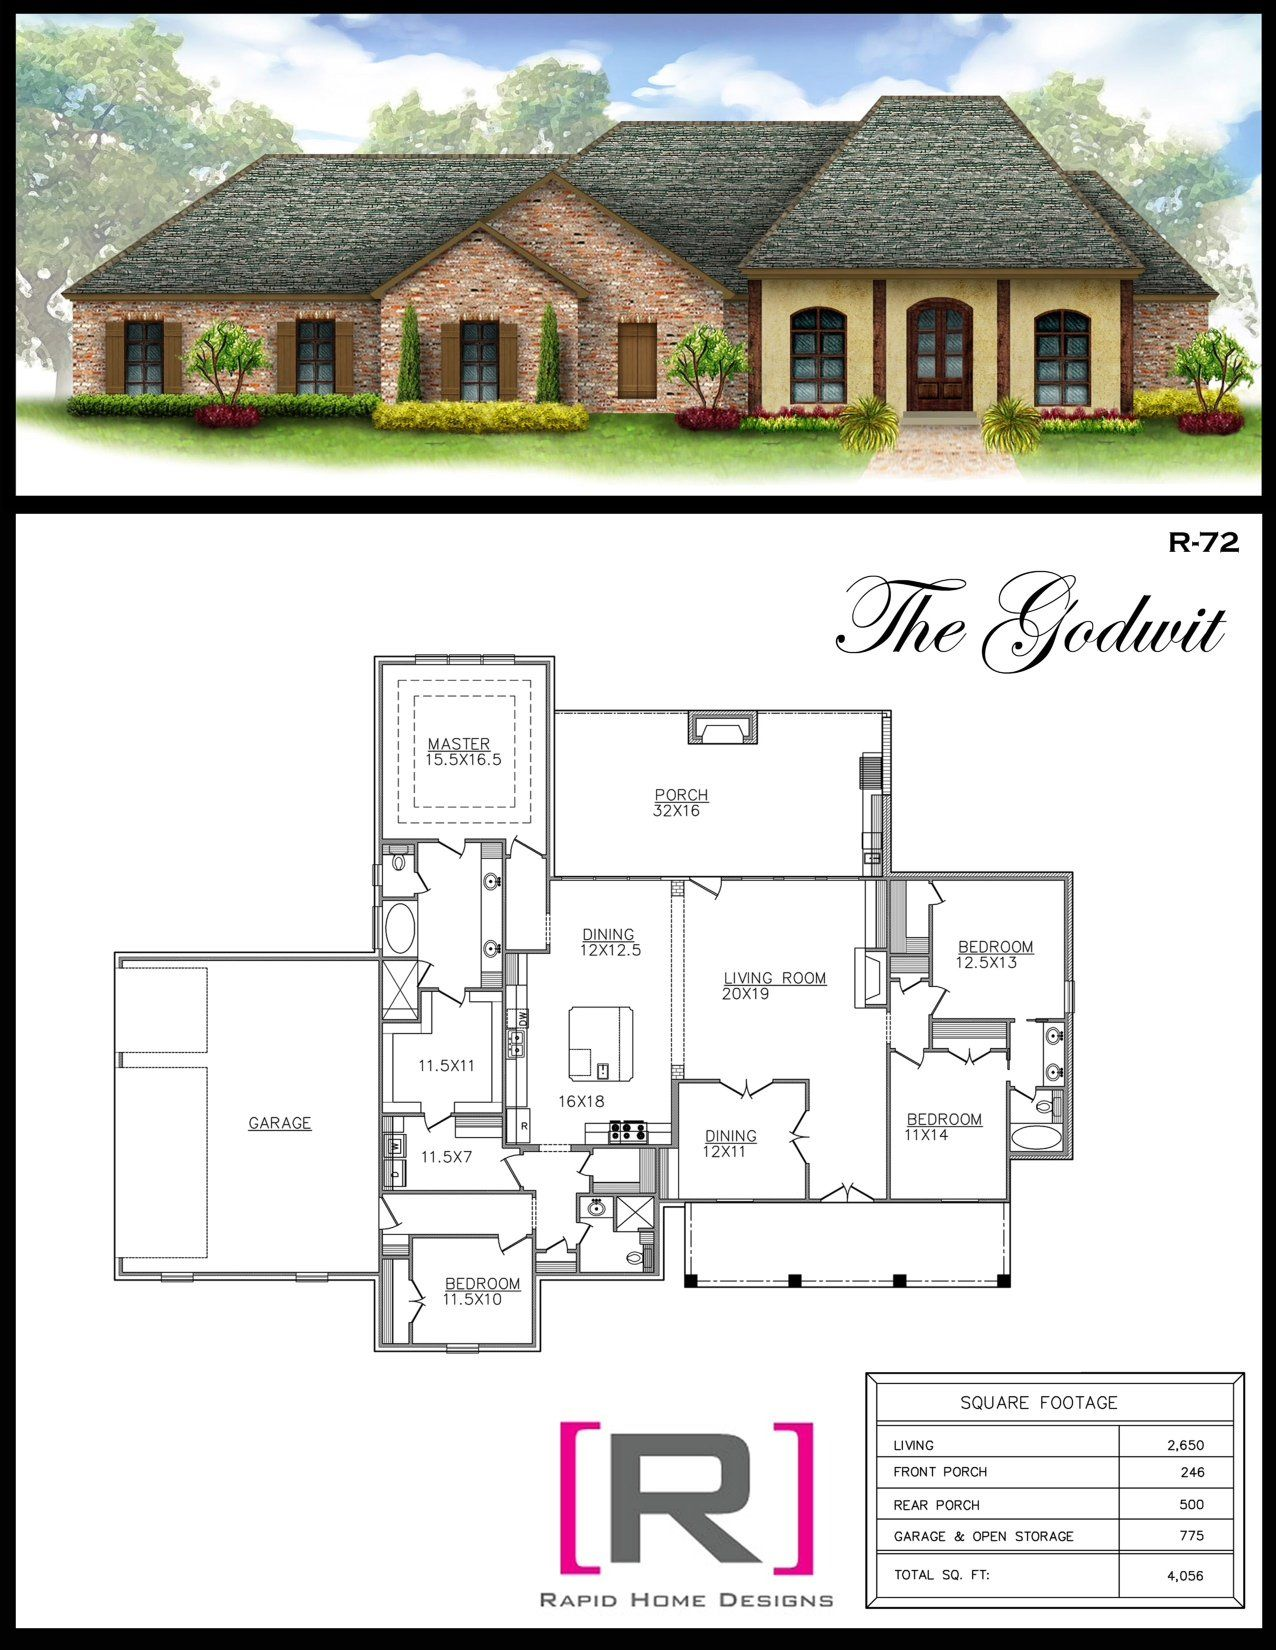 The Godwit 2650sf Modern Architecture Design New House Plans Dream House Plans